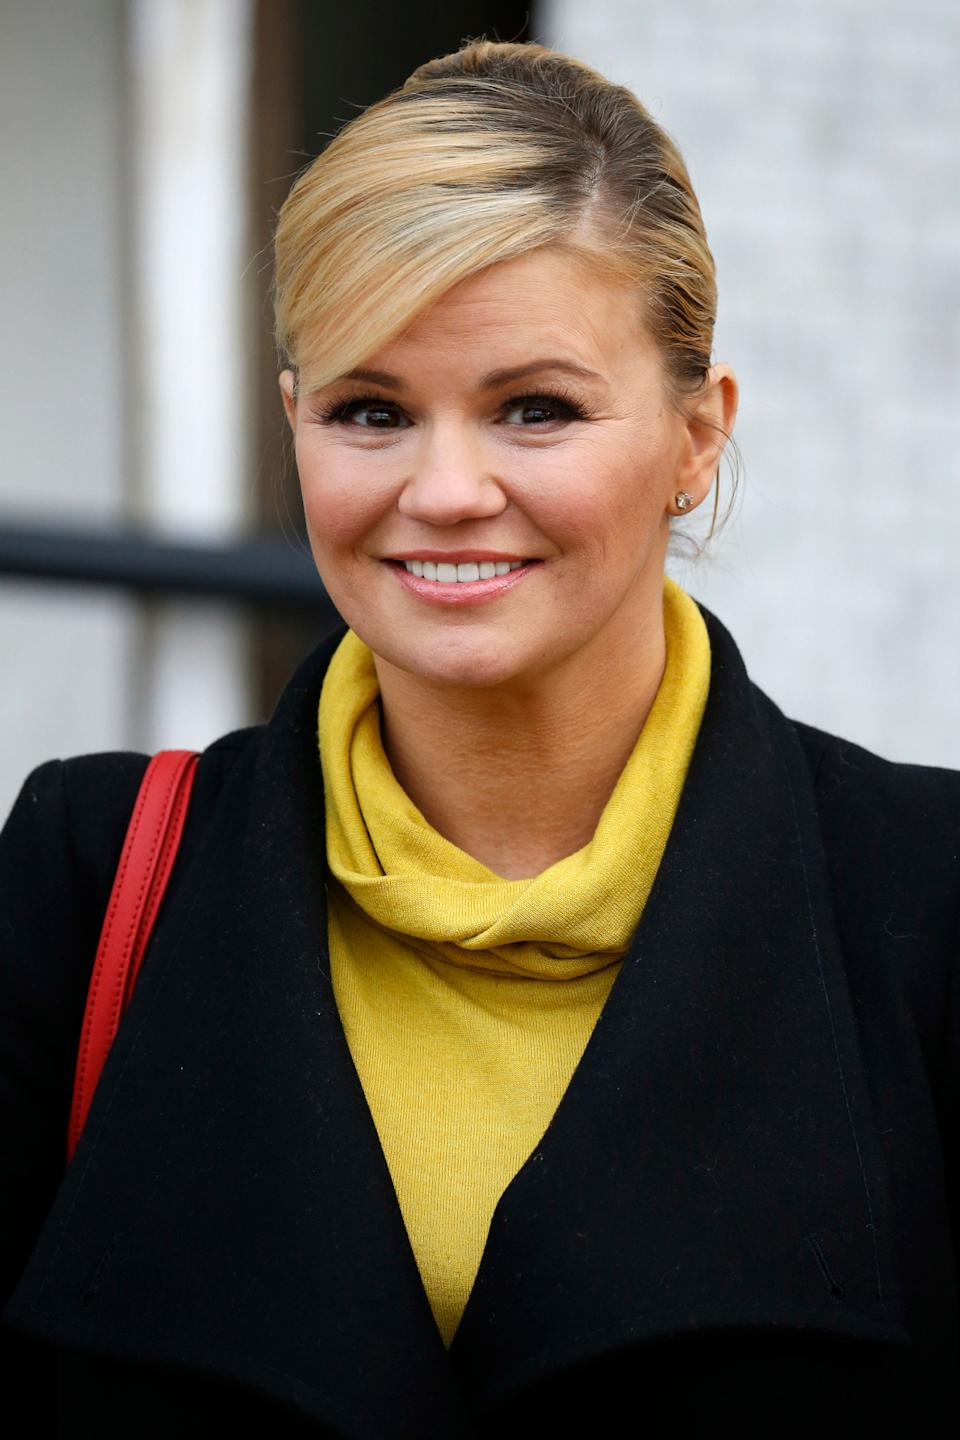 Ah, Kerry.<br /><br />In addition to her varying success on I'm A Celebrity, Celebrity Big Brother, The Big Reunion and Dancing On Ice, the reality star has also had a string of fly-on-the-wall shows in her name, including – but not limited to – Kerry Katona: Crazy In Love, Kerry Katona: What's The Problem? and Kerry Katona: The Next Chapter.<br /><br />In 2019, she returned to reality TV as a contestant on Celebs Go Dating, though she was ultimately unable to find a match.